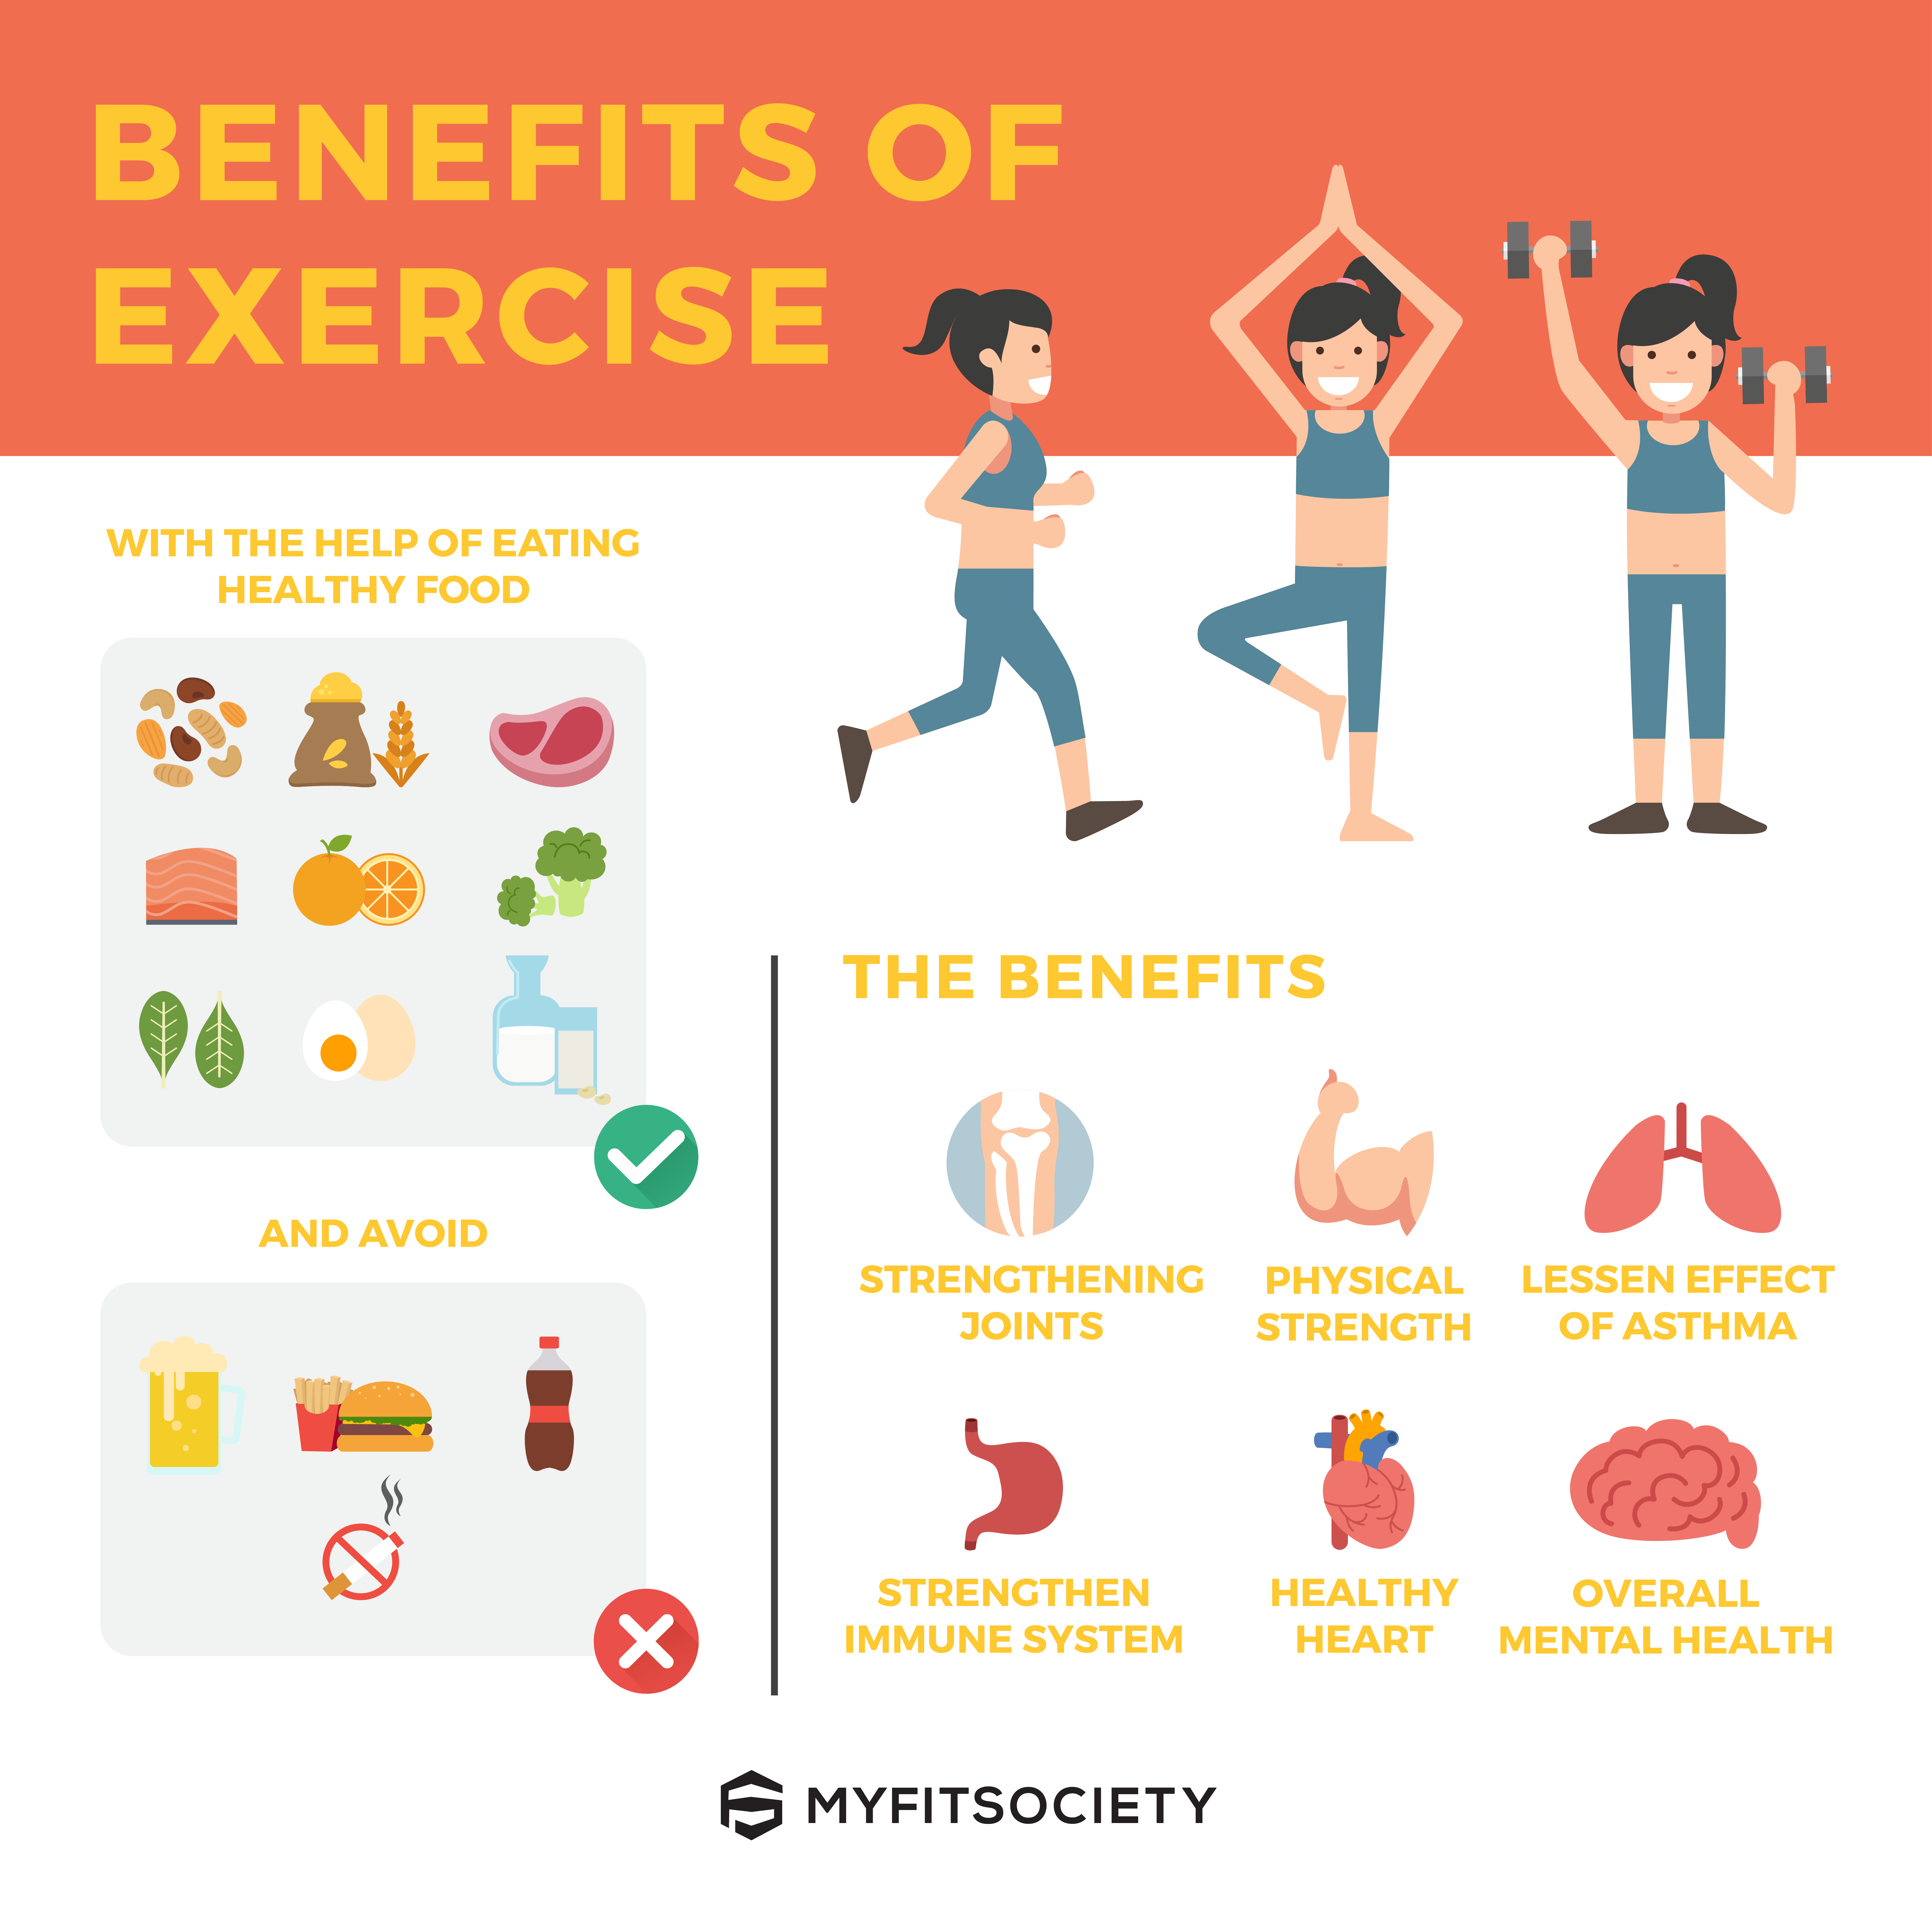 Exercise Plus Good Food Equals A Healthy Lifestyle How Often Do You Exercise Healthtips Fitness Food Health Tips Benefits Of Exercise Exercise